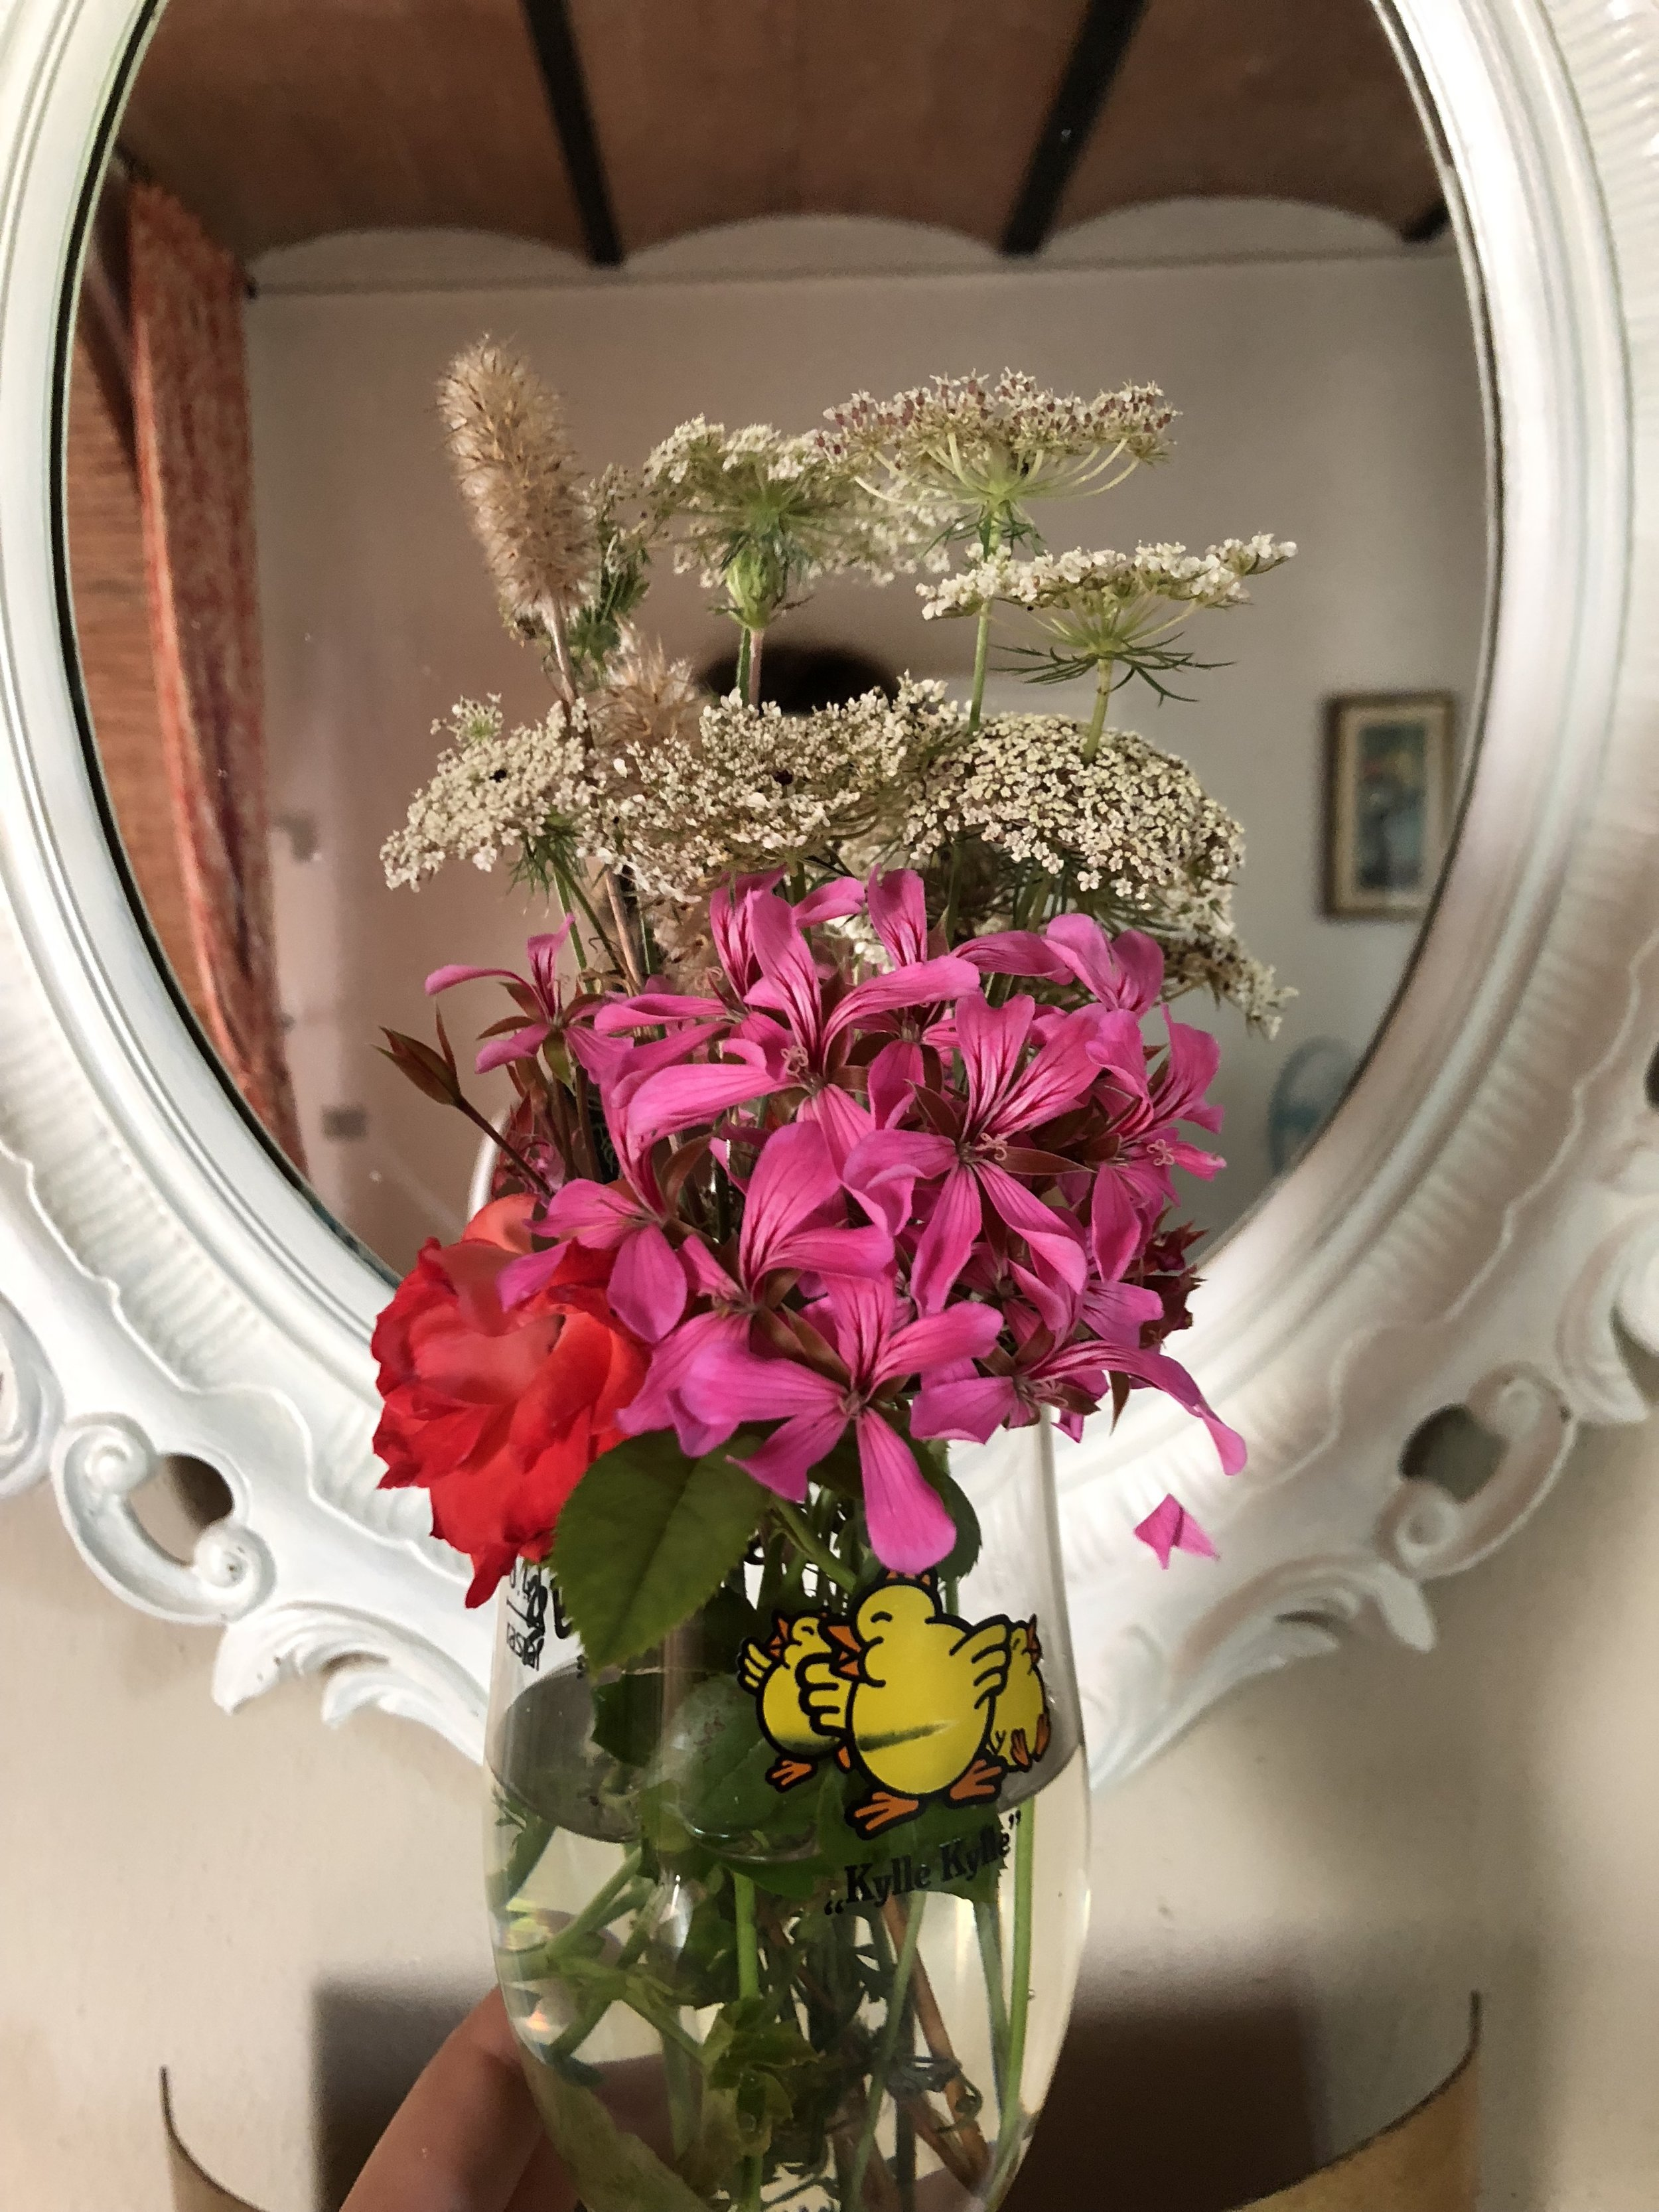 Jon picked me flowers. I think he did a great job on the arrangment :)